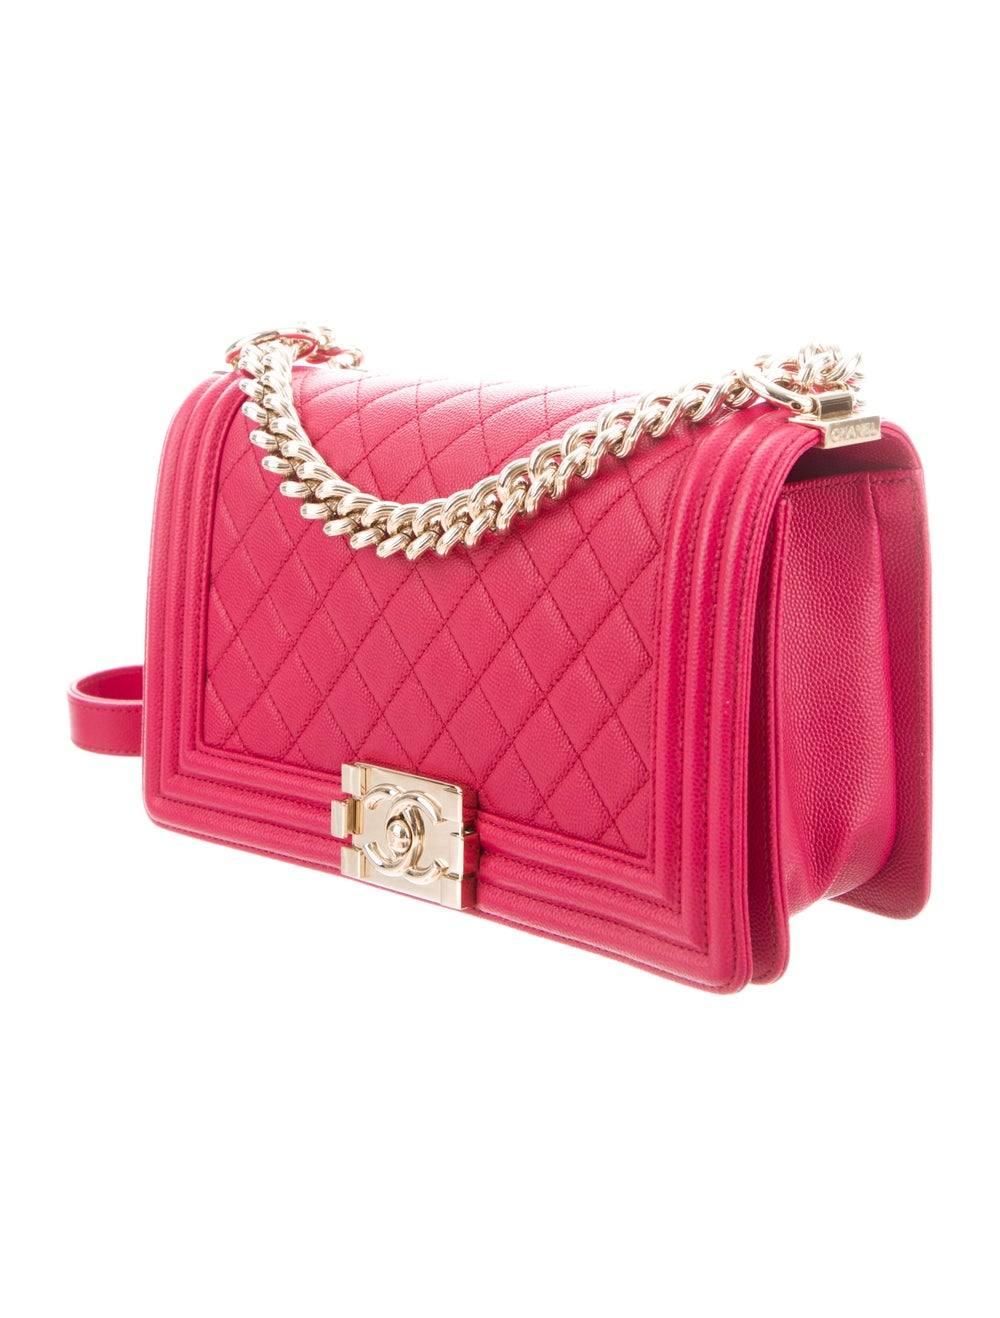 Chanel Quilted Medium Boy Bag Pink - image 3